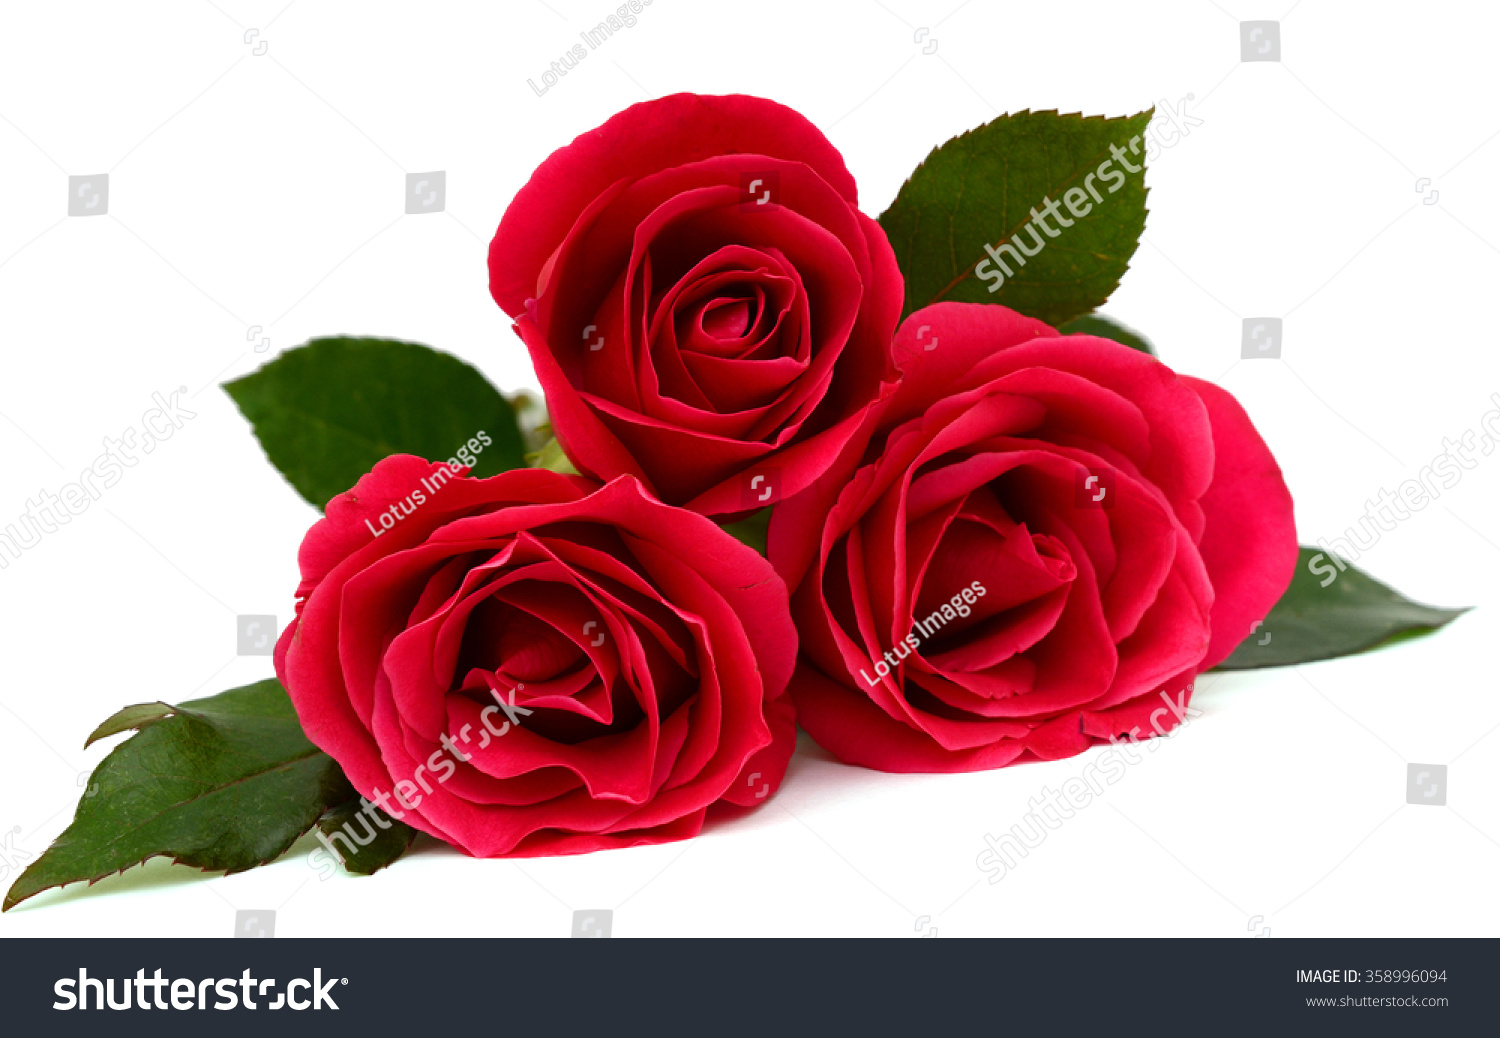 Red Rose Flower Isolated On White Background Ez Canvas